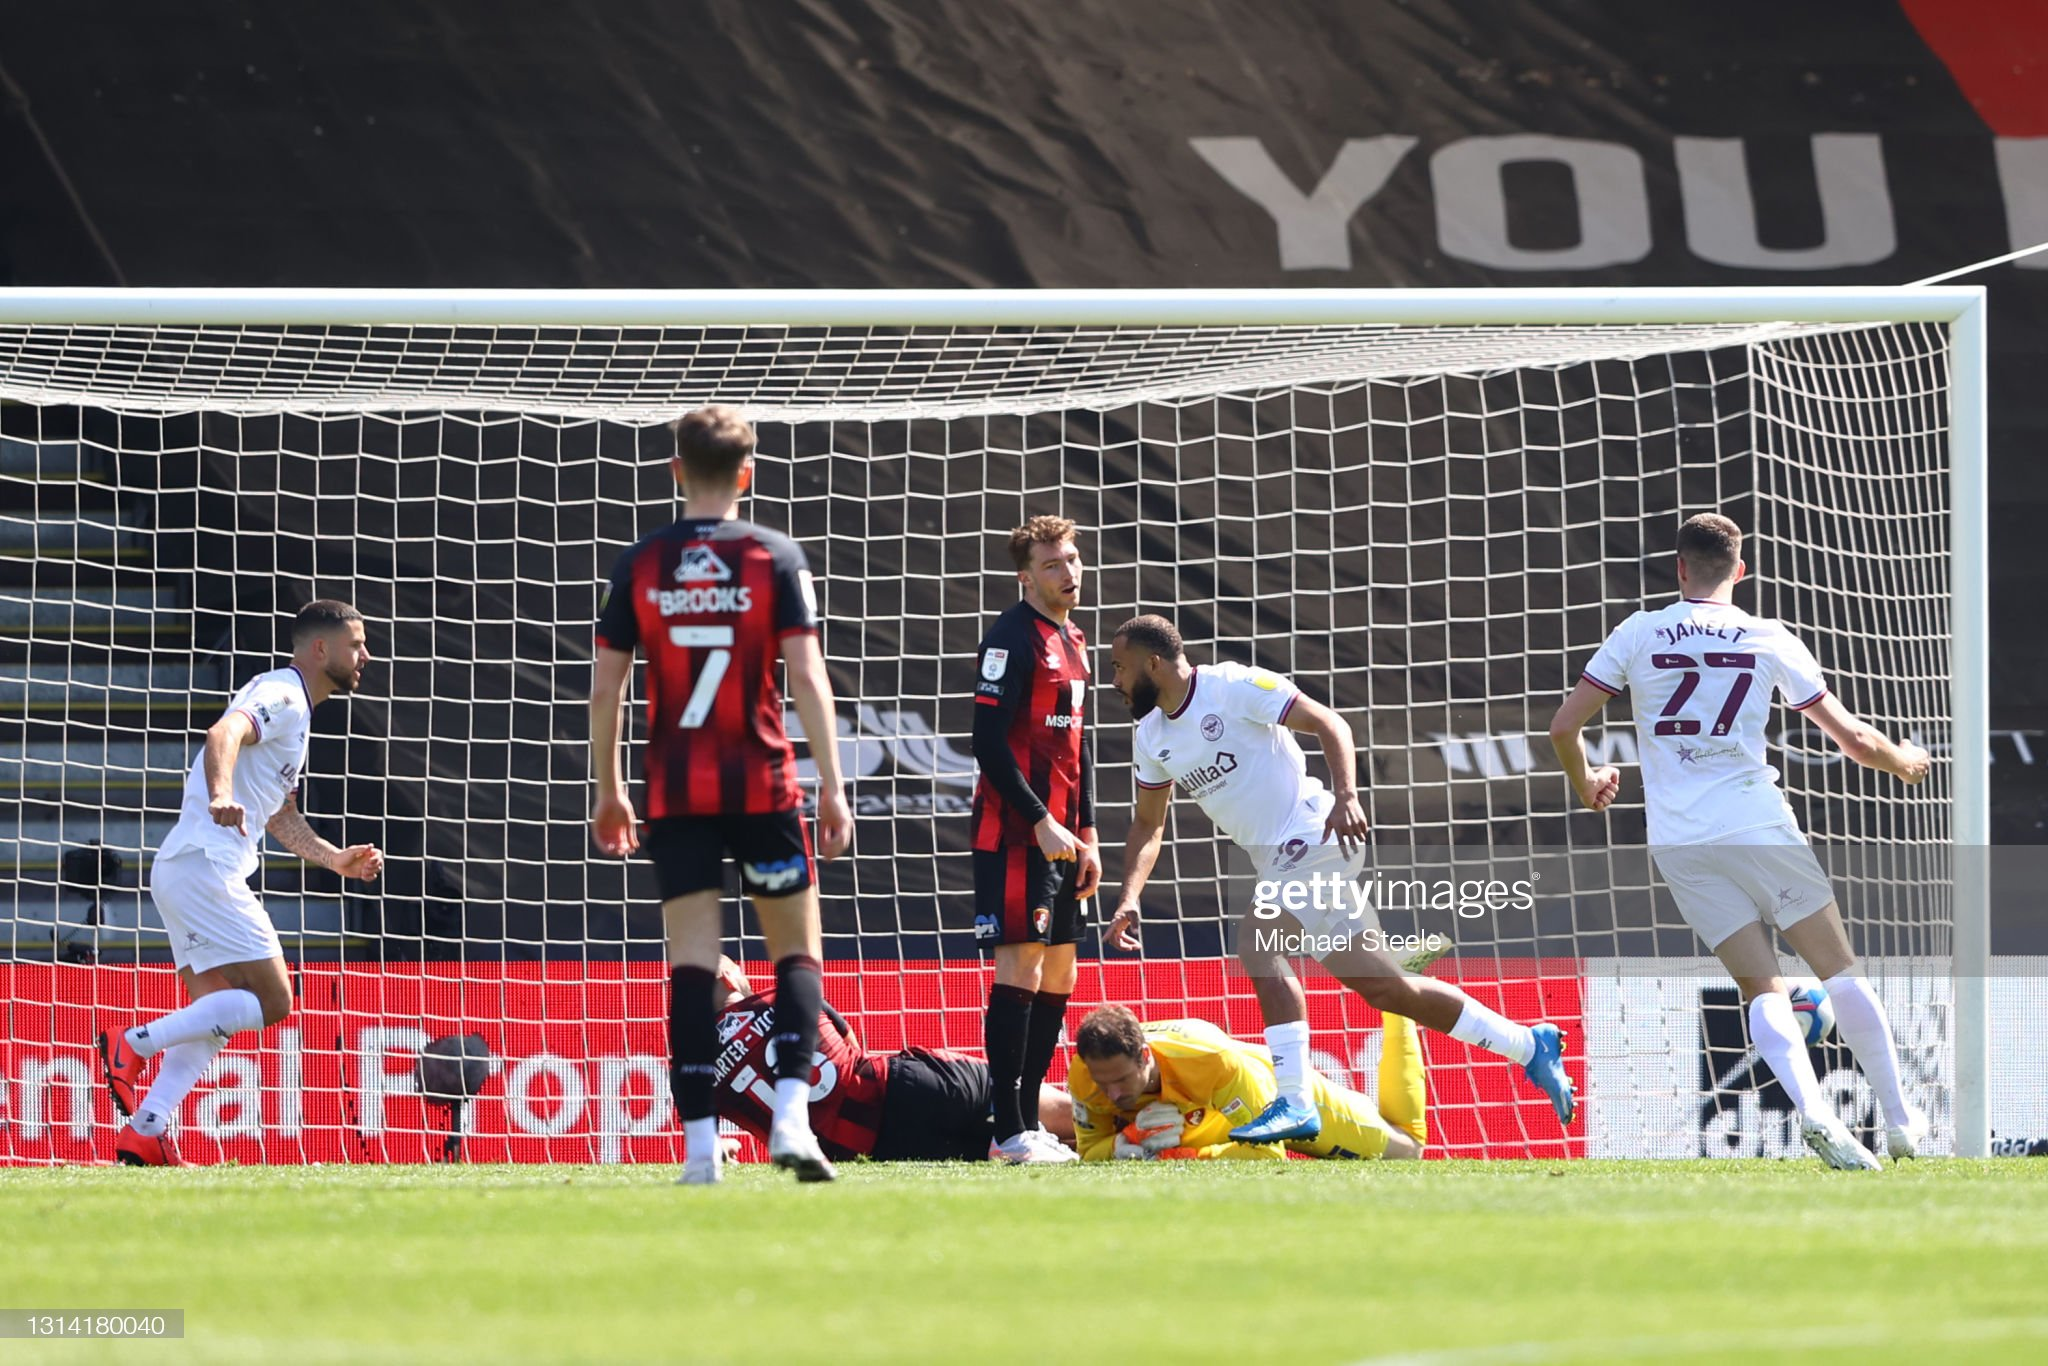 Mbeumo's goal gives 10-man Brentford victory at Bournemouth